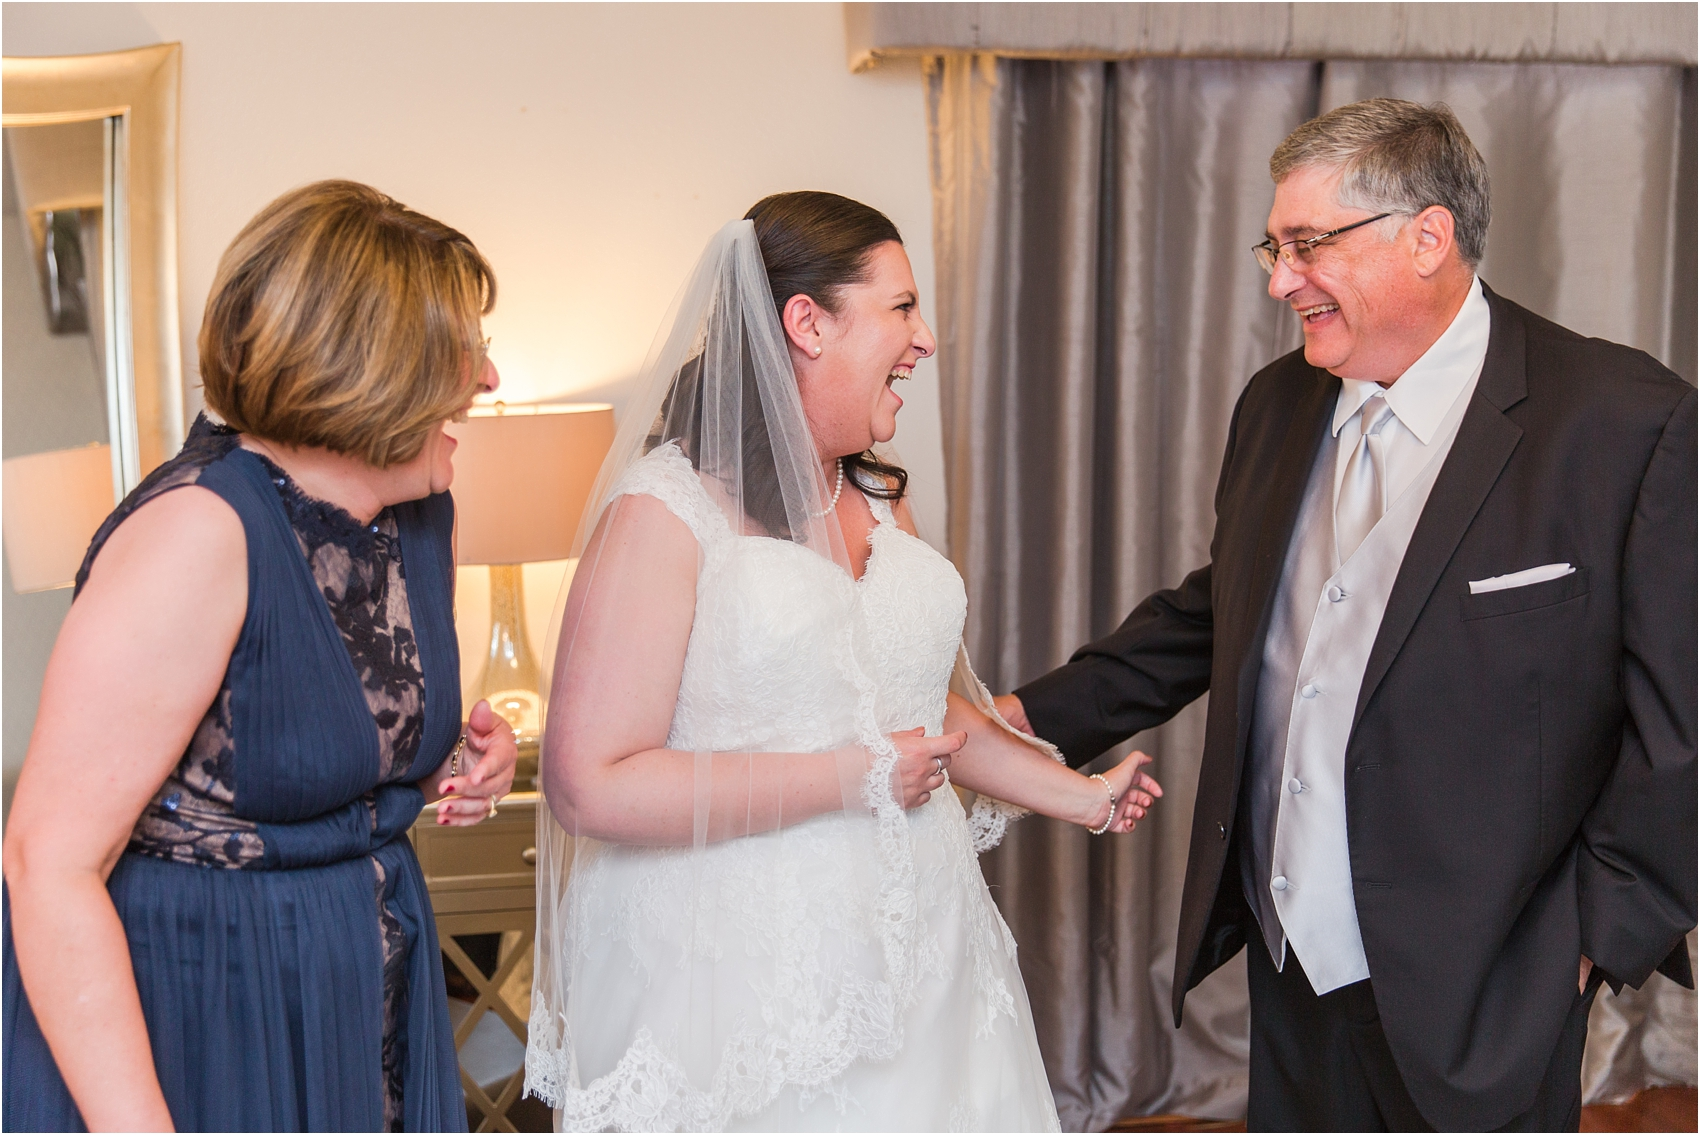 father-and-bride-share-emotional-first-look-on-wedding-day-photos-in-detroit-michigan-by-courtney-carolyn-photography_0074.jpg